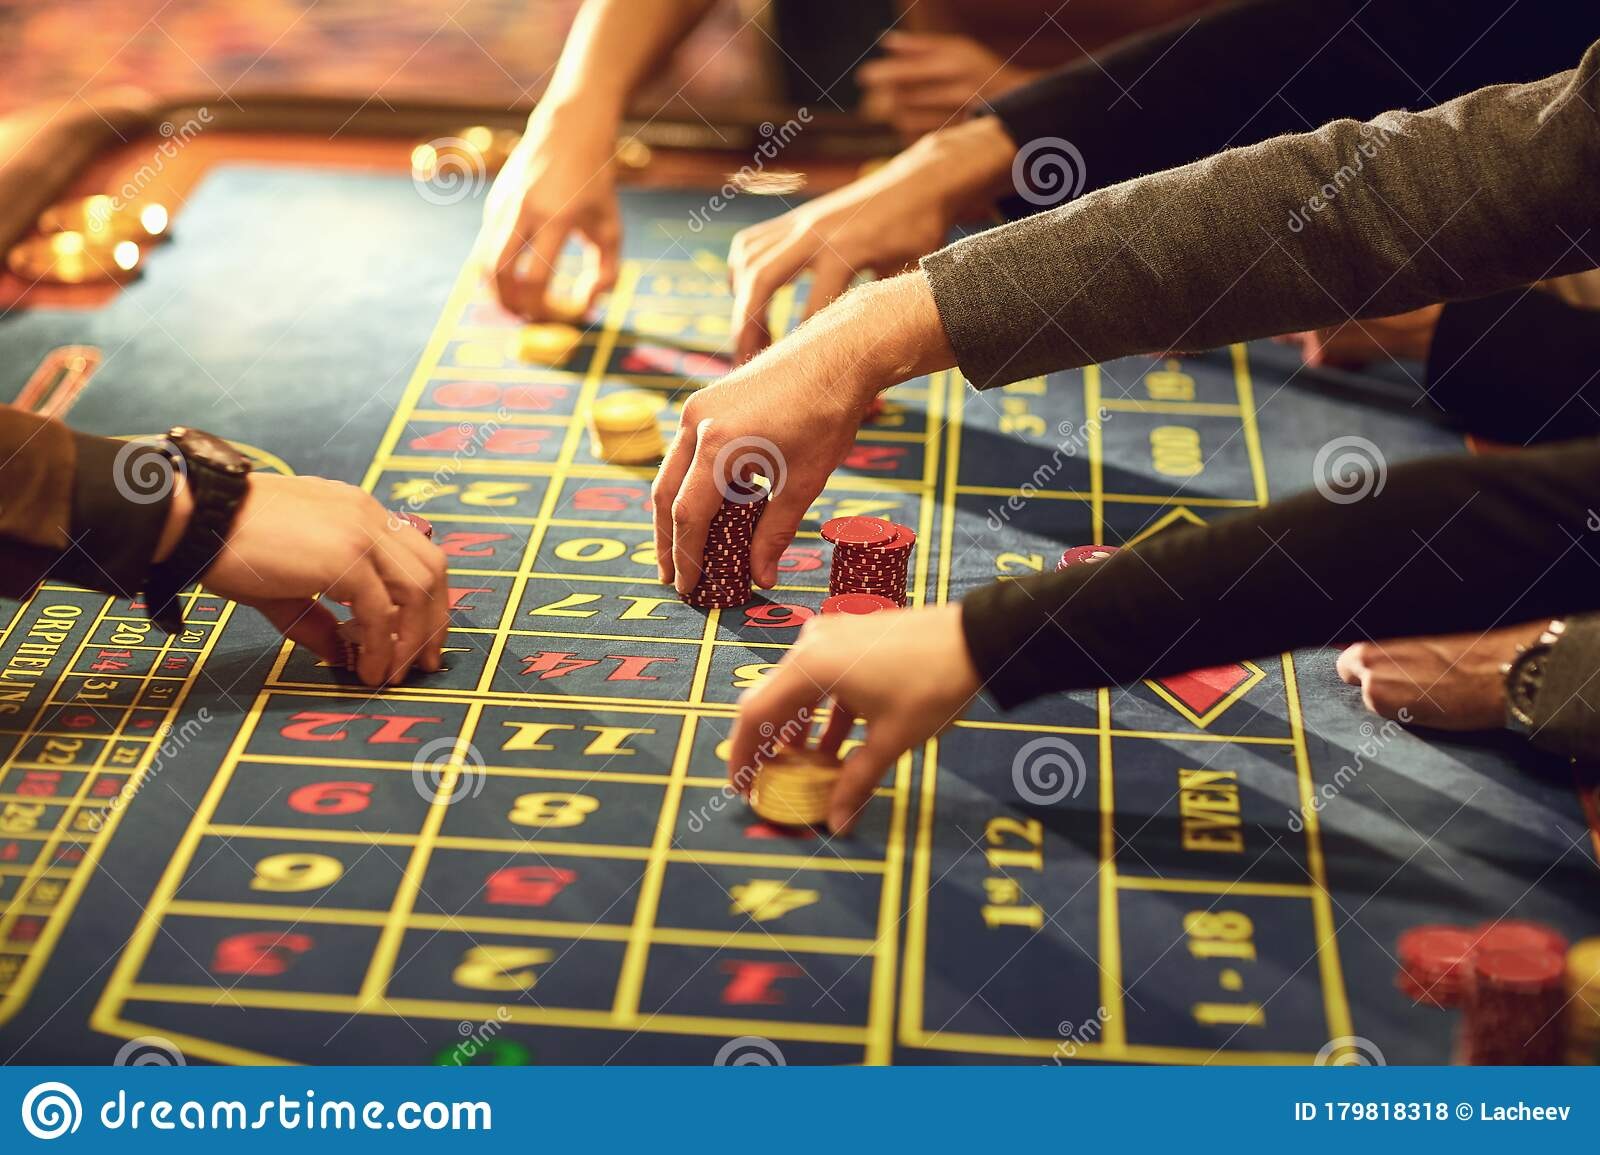 Gamblers placing their bets at a roulette table